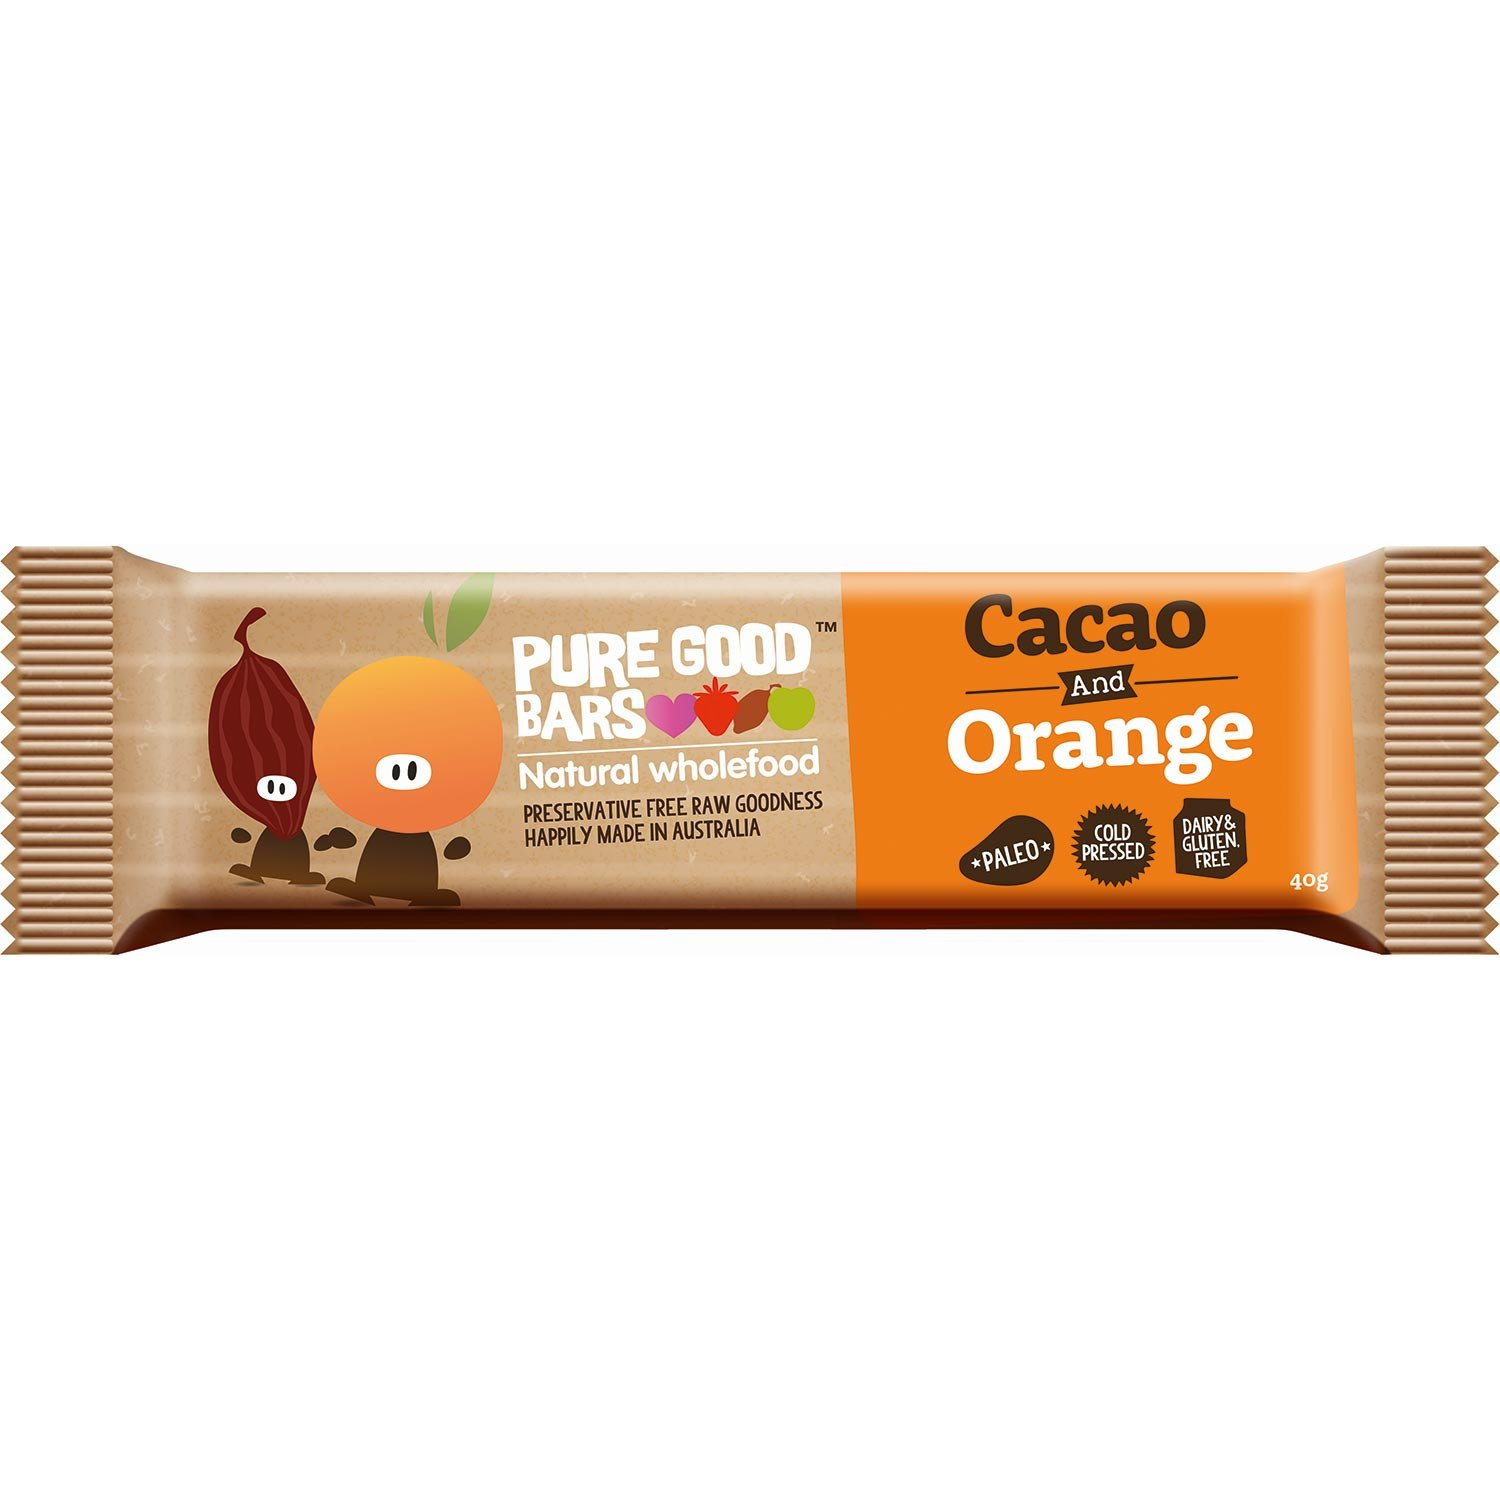 Pure Good Bars -Cocao and Orange, 40g